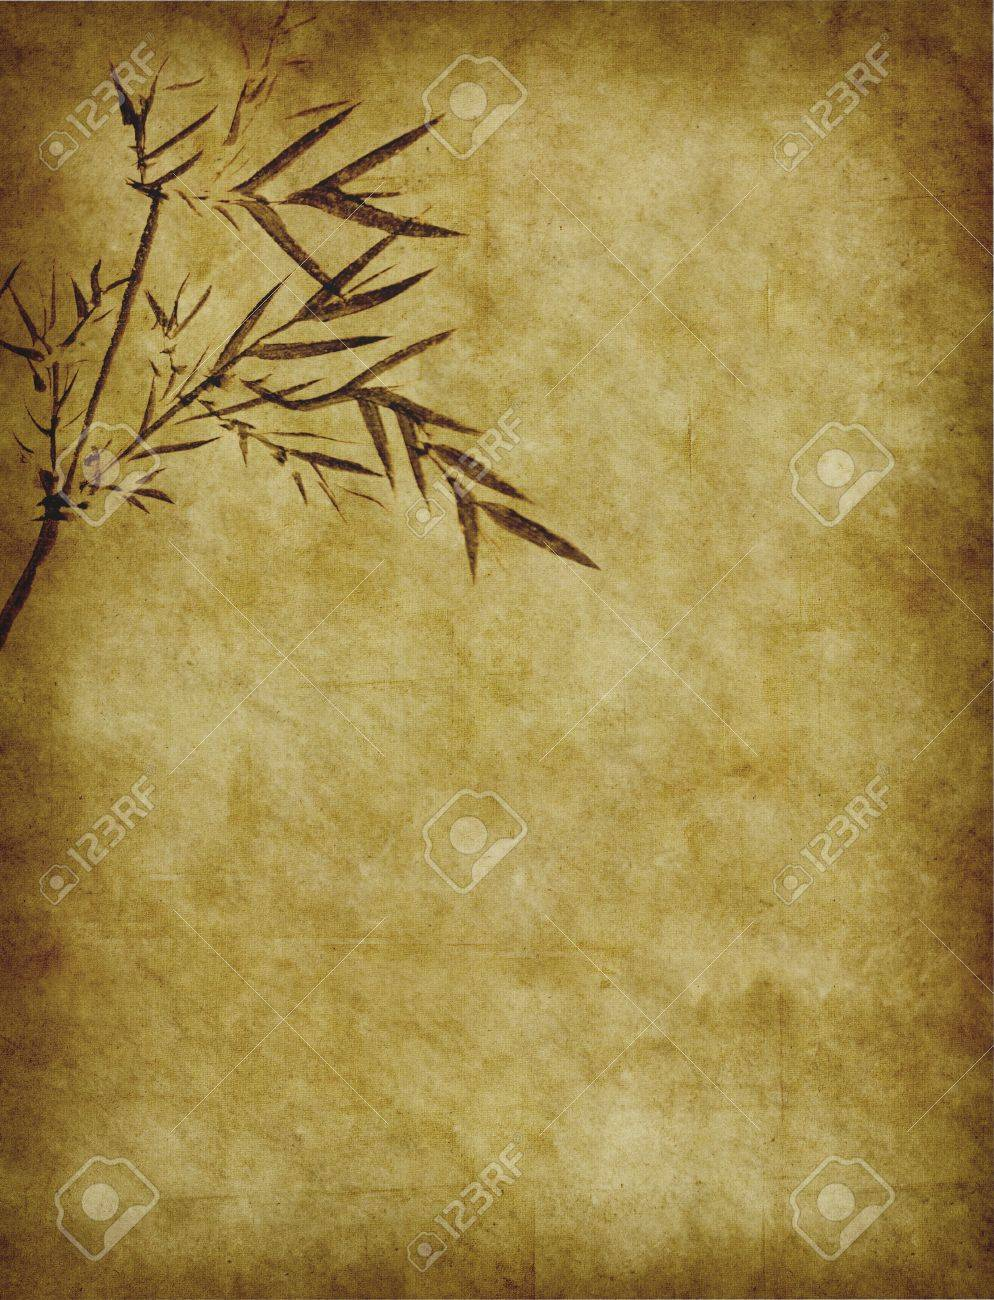 bamboo on old grunge antique paper texture Stock Photo - 9617252